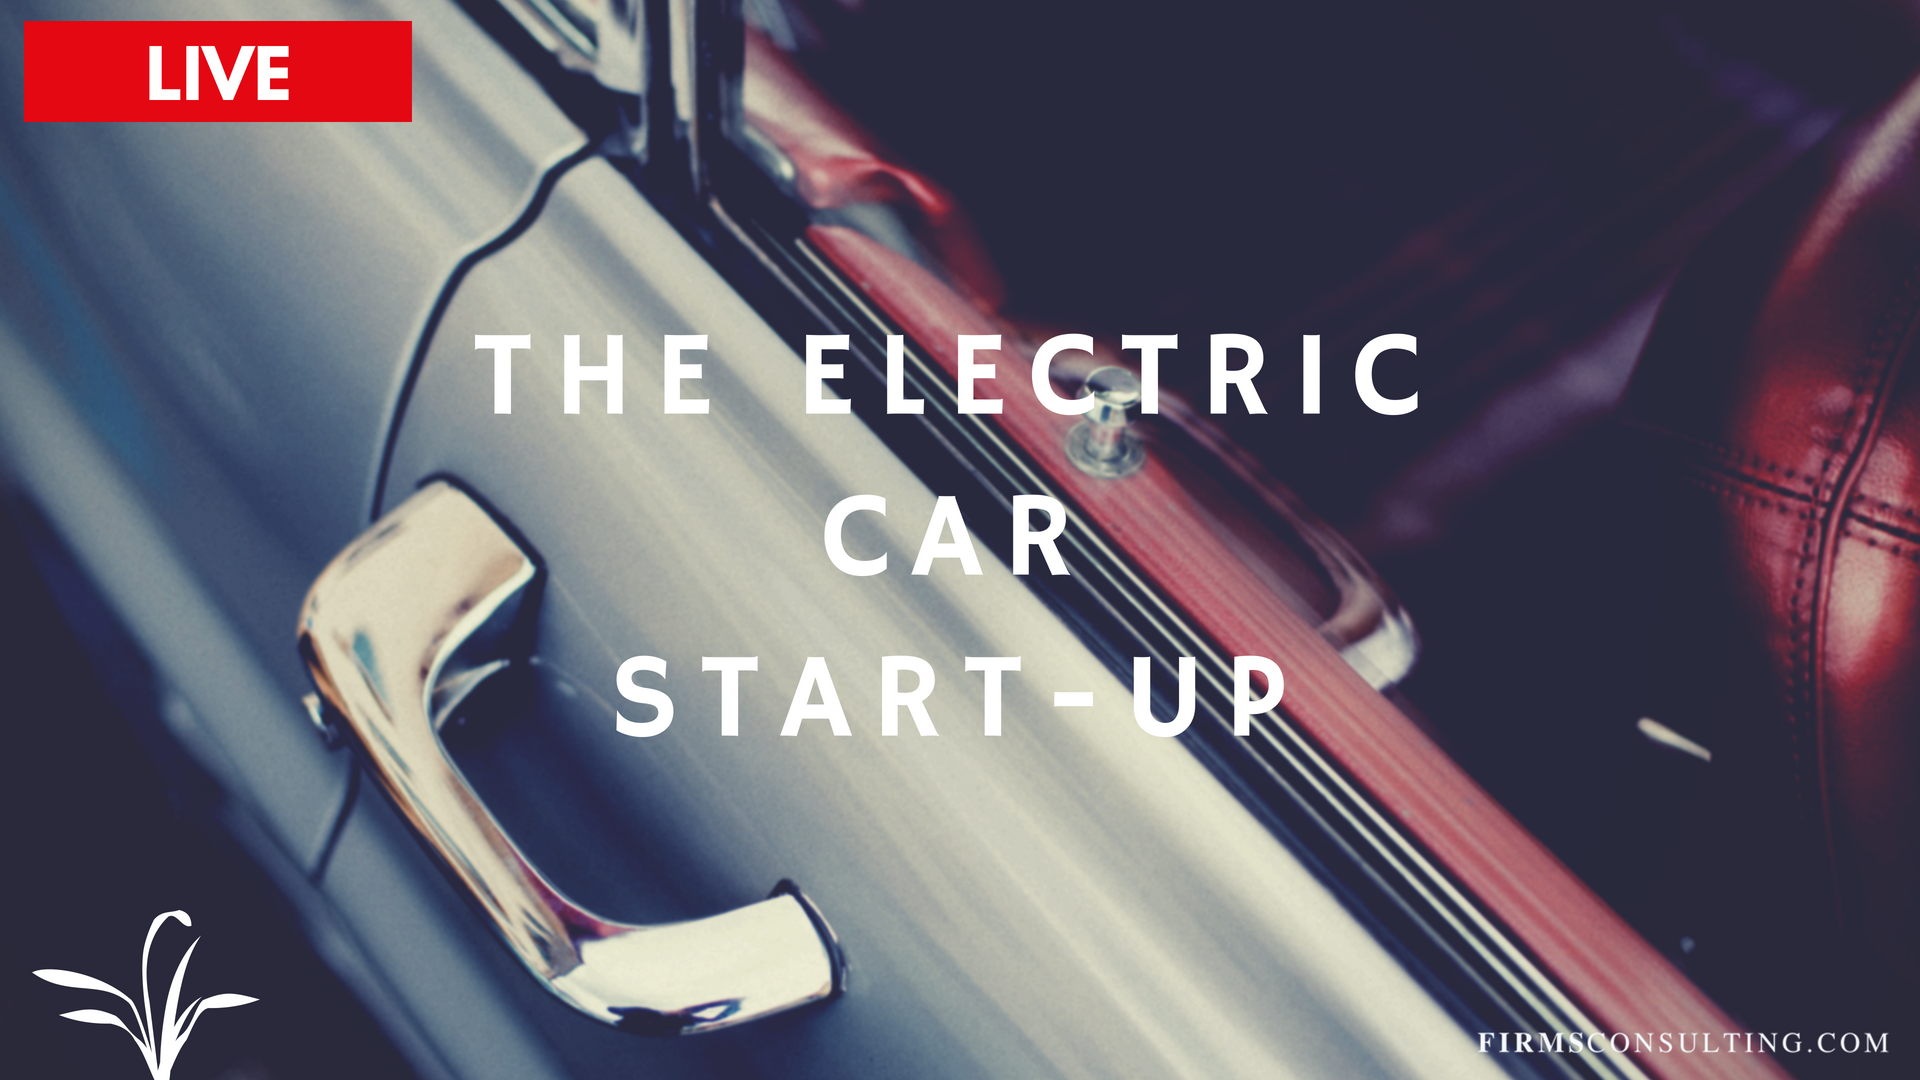 Poster for the Electric Car Startup Program